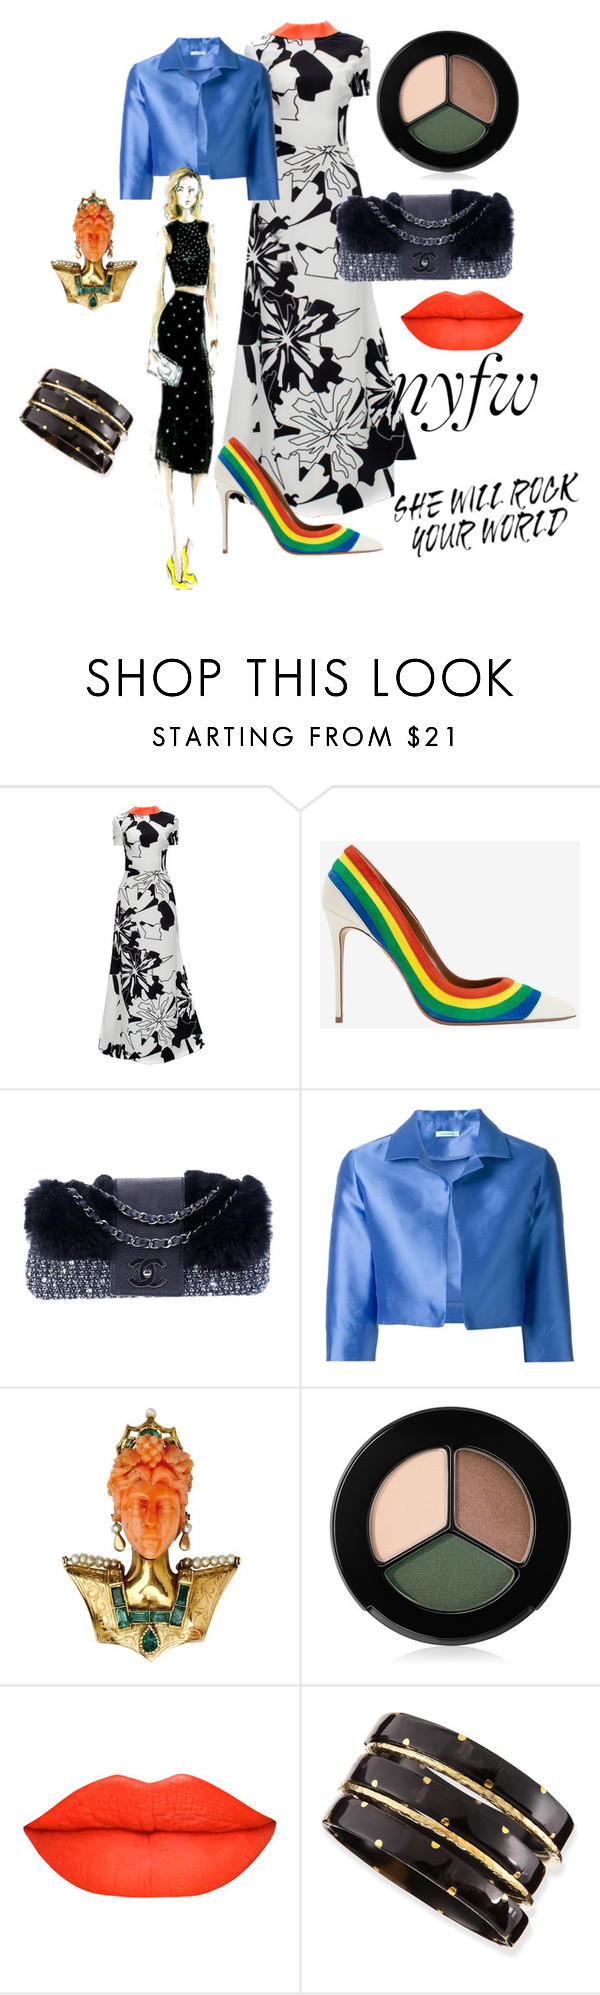 """NYFW #4"" by russetandolive ❤ liked on Polyvore featuring Lattori, Aquazzura, Chanel, P.A.R.O.S.H., Smashbox, Ashley Pittman, women's clothing, women, female and woman"